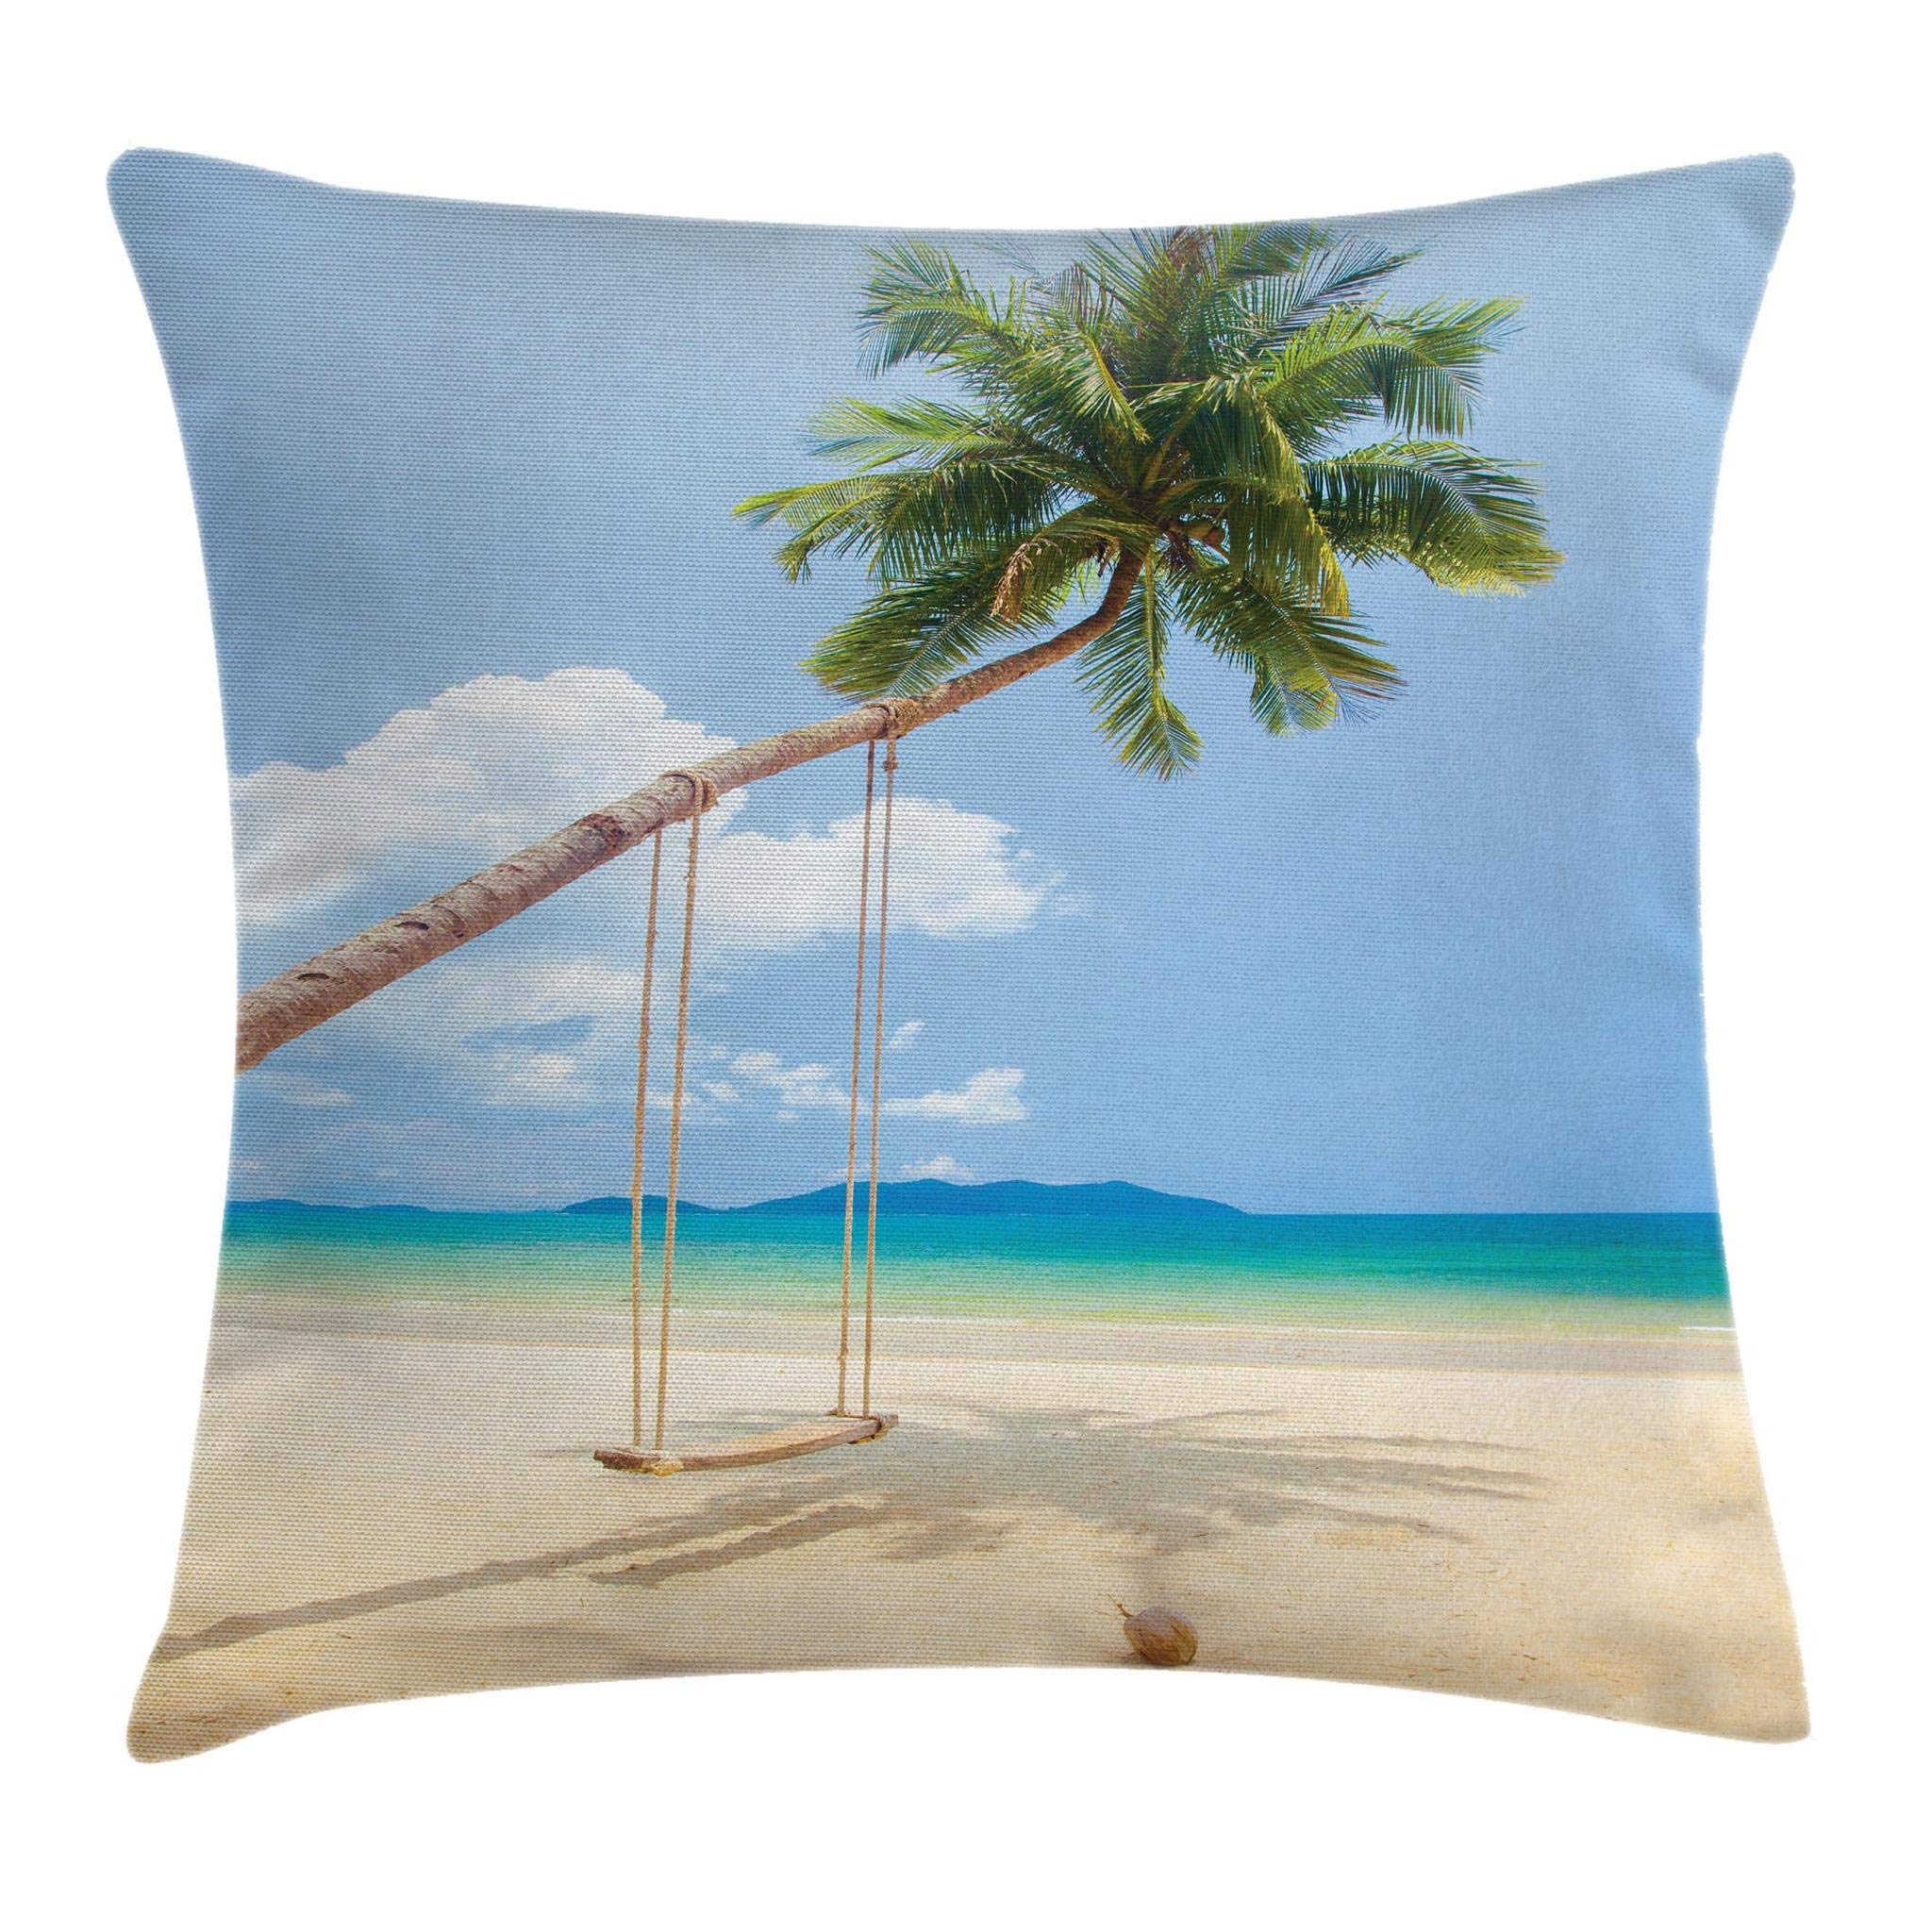 Ambesonne Ocean Throw Pillow Cushion Cover, Photo of a Tropical Island with Coconuts Palm Trees and Swing Beach Exotic, Decorative Square Accent Pillow Case, 16'' X 16'', Cream Blue Green